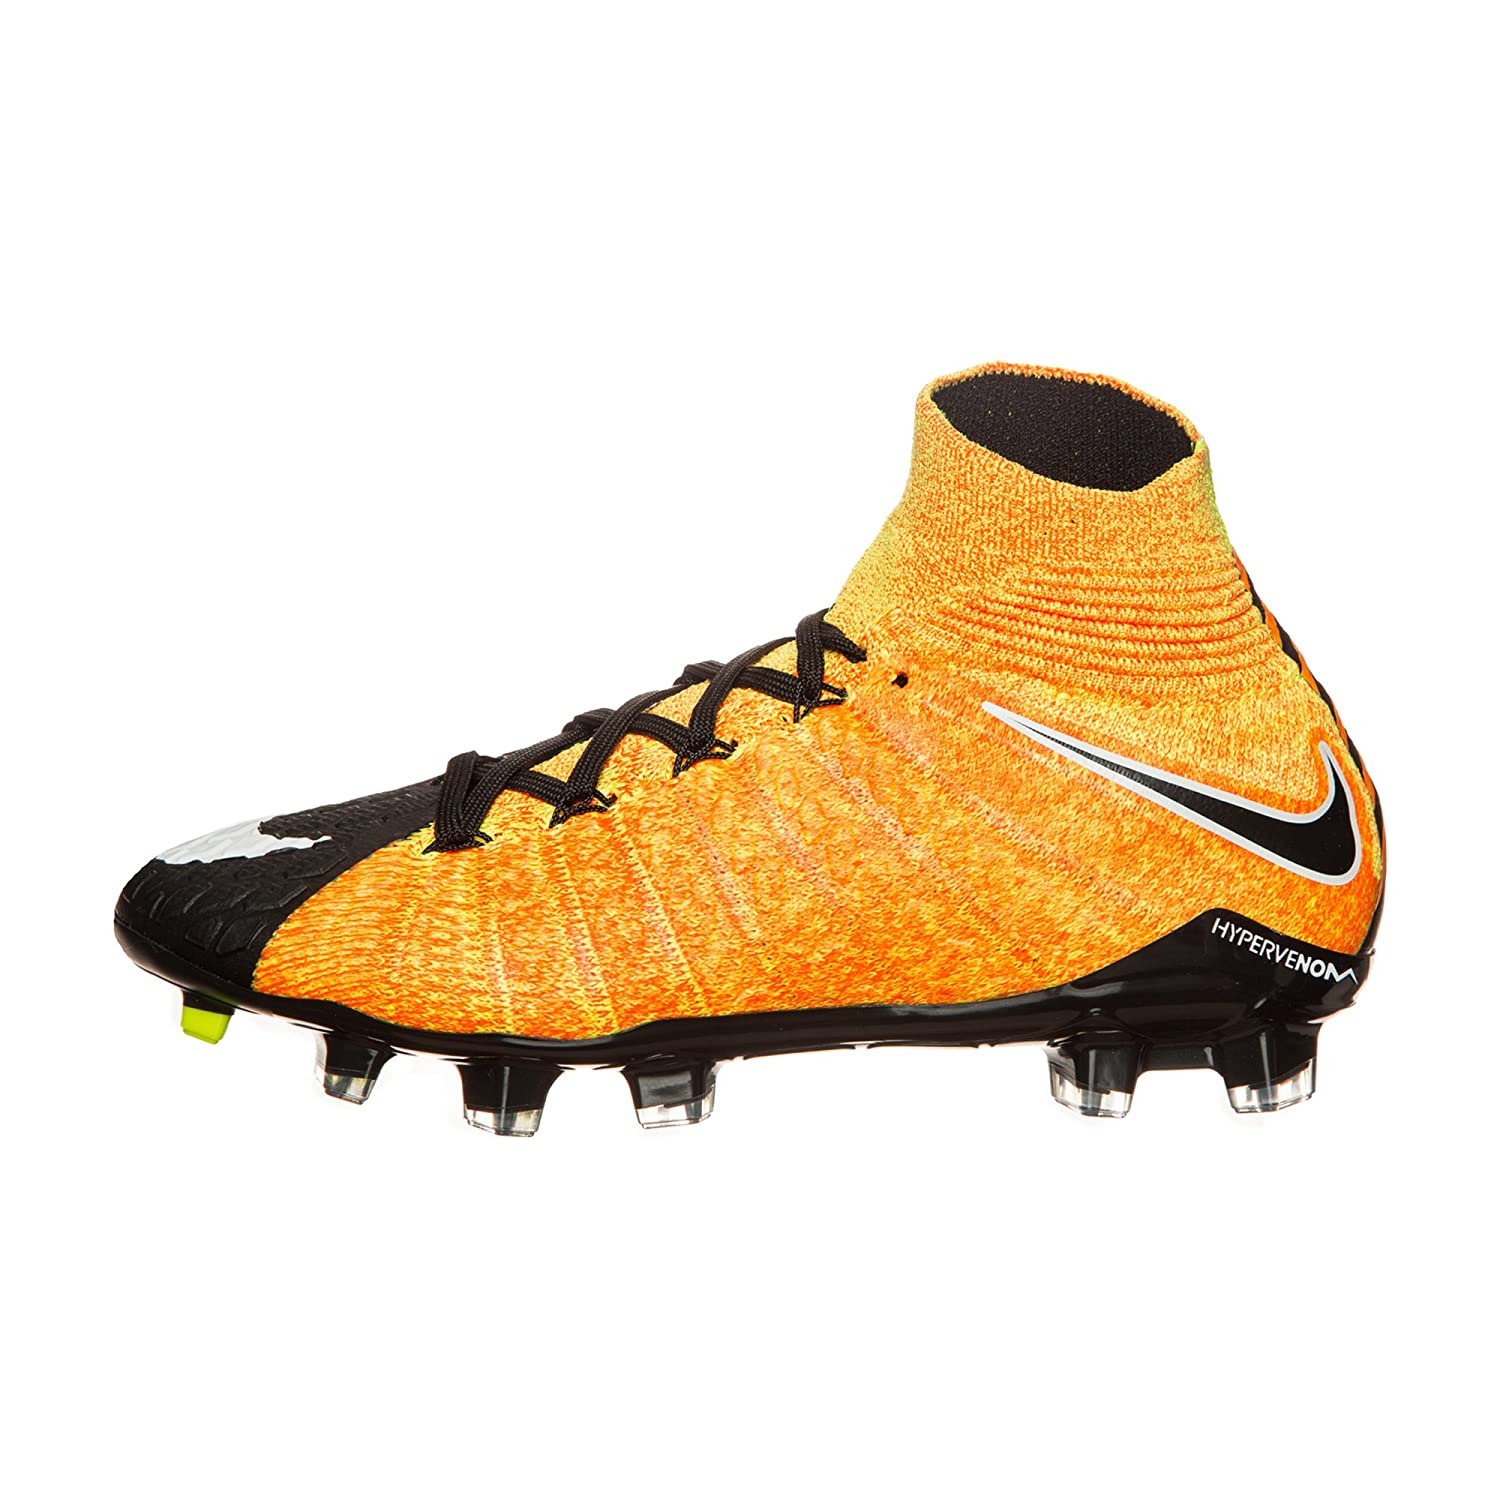 43882eff937b Amazon.com  Nike Jr Hypervenom Phantom III DF FG  Sports   Outdoors